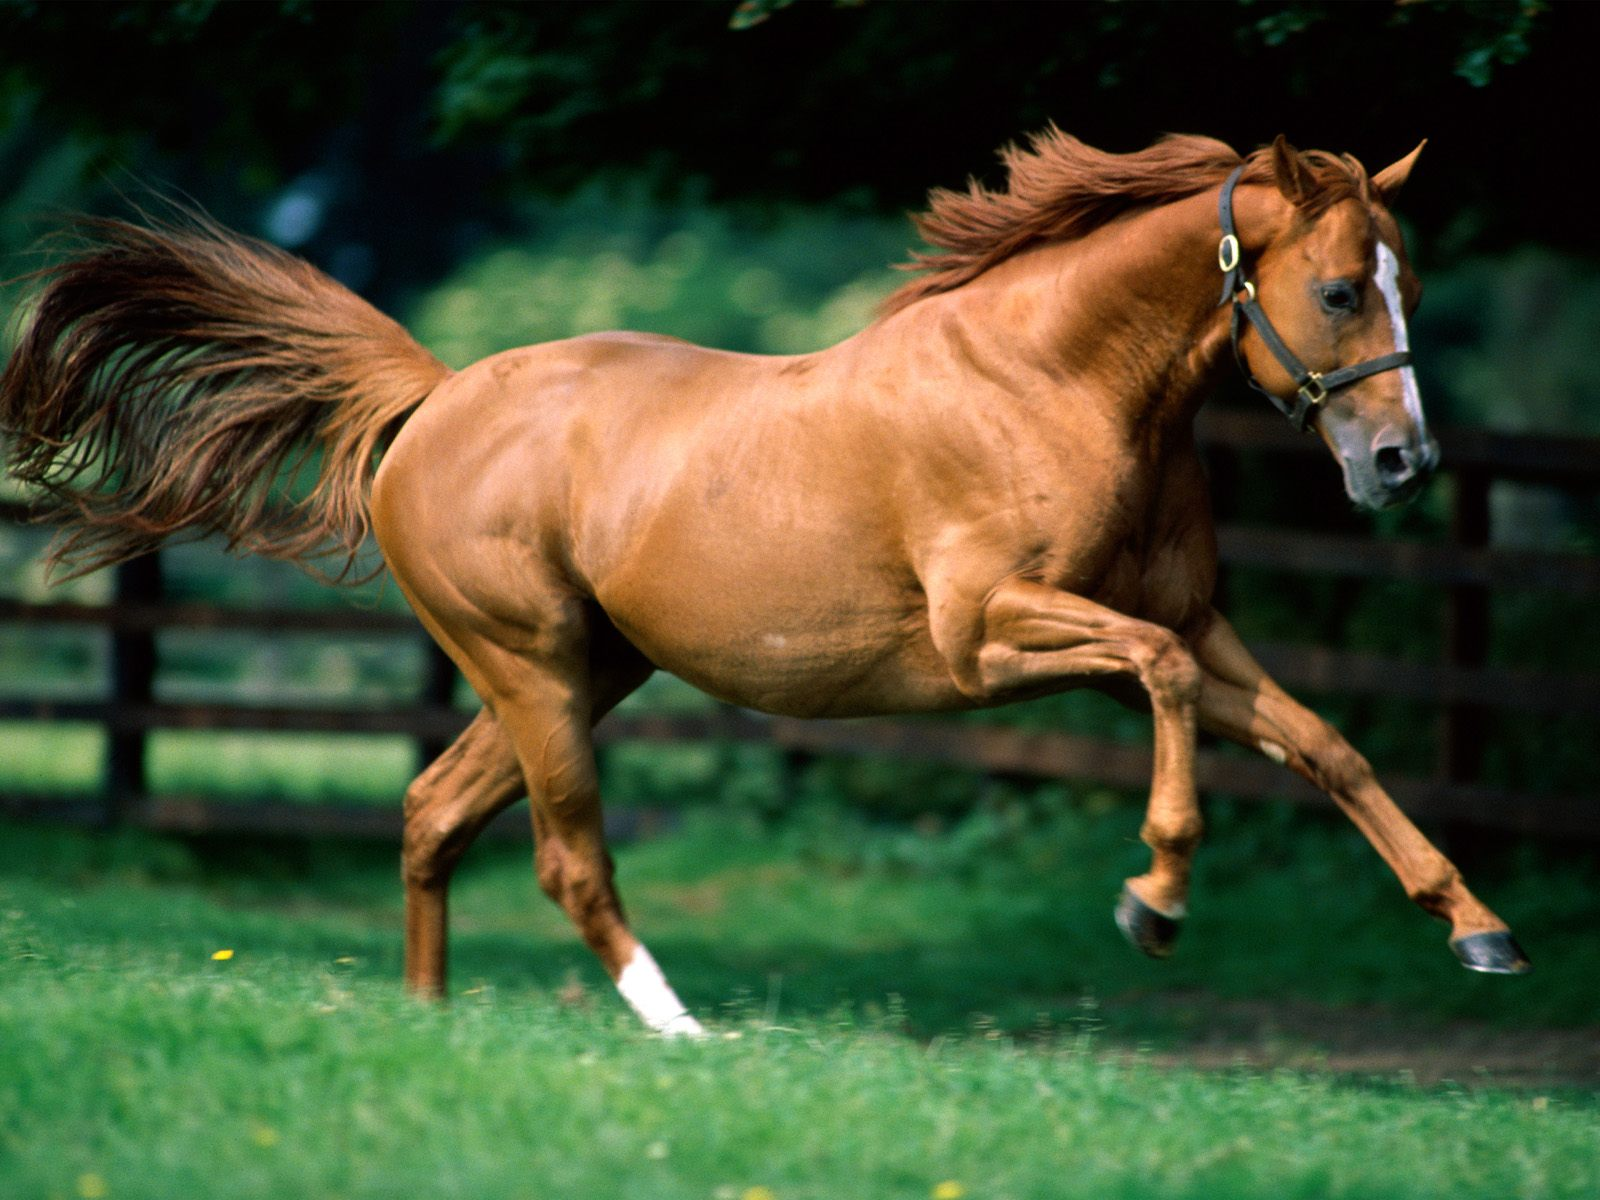 brown horse pictures 32528 1600x1200 px ~ hdwallsource